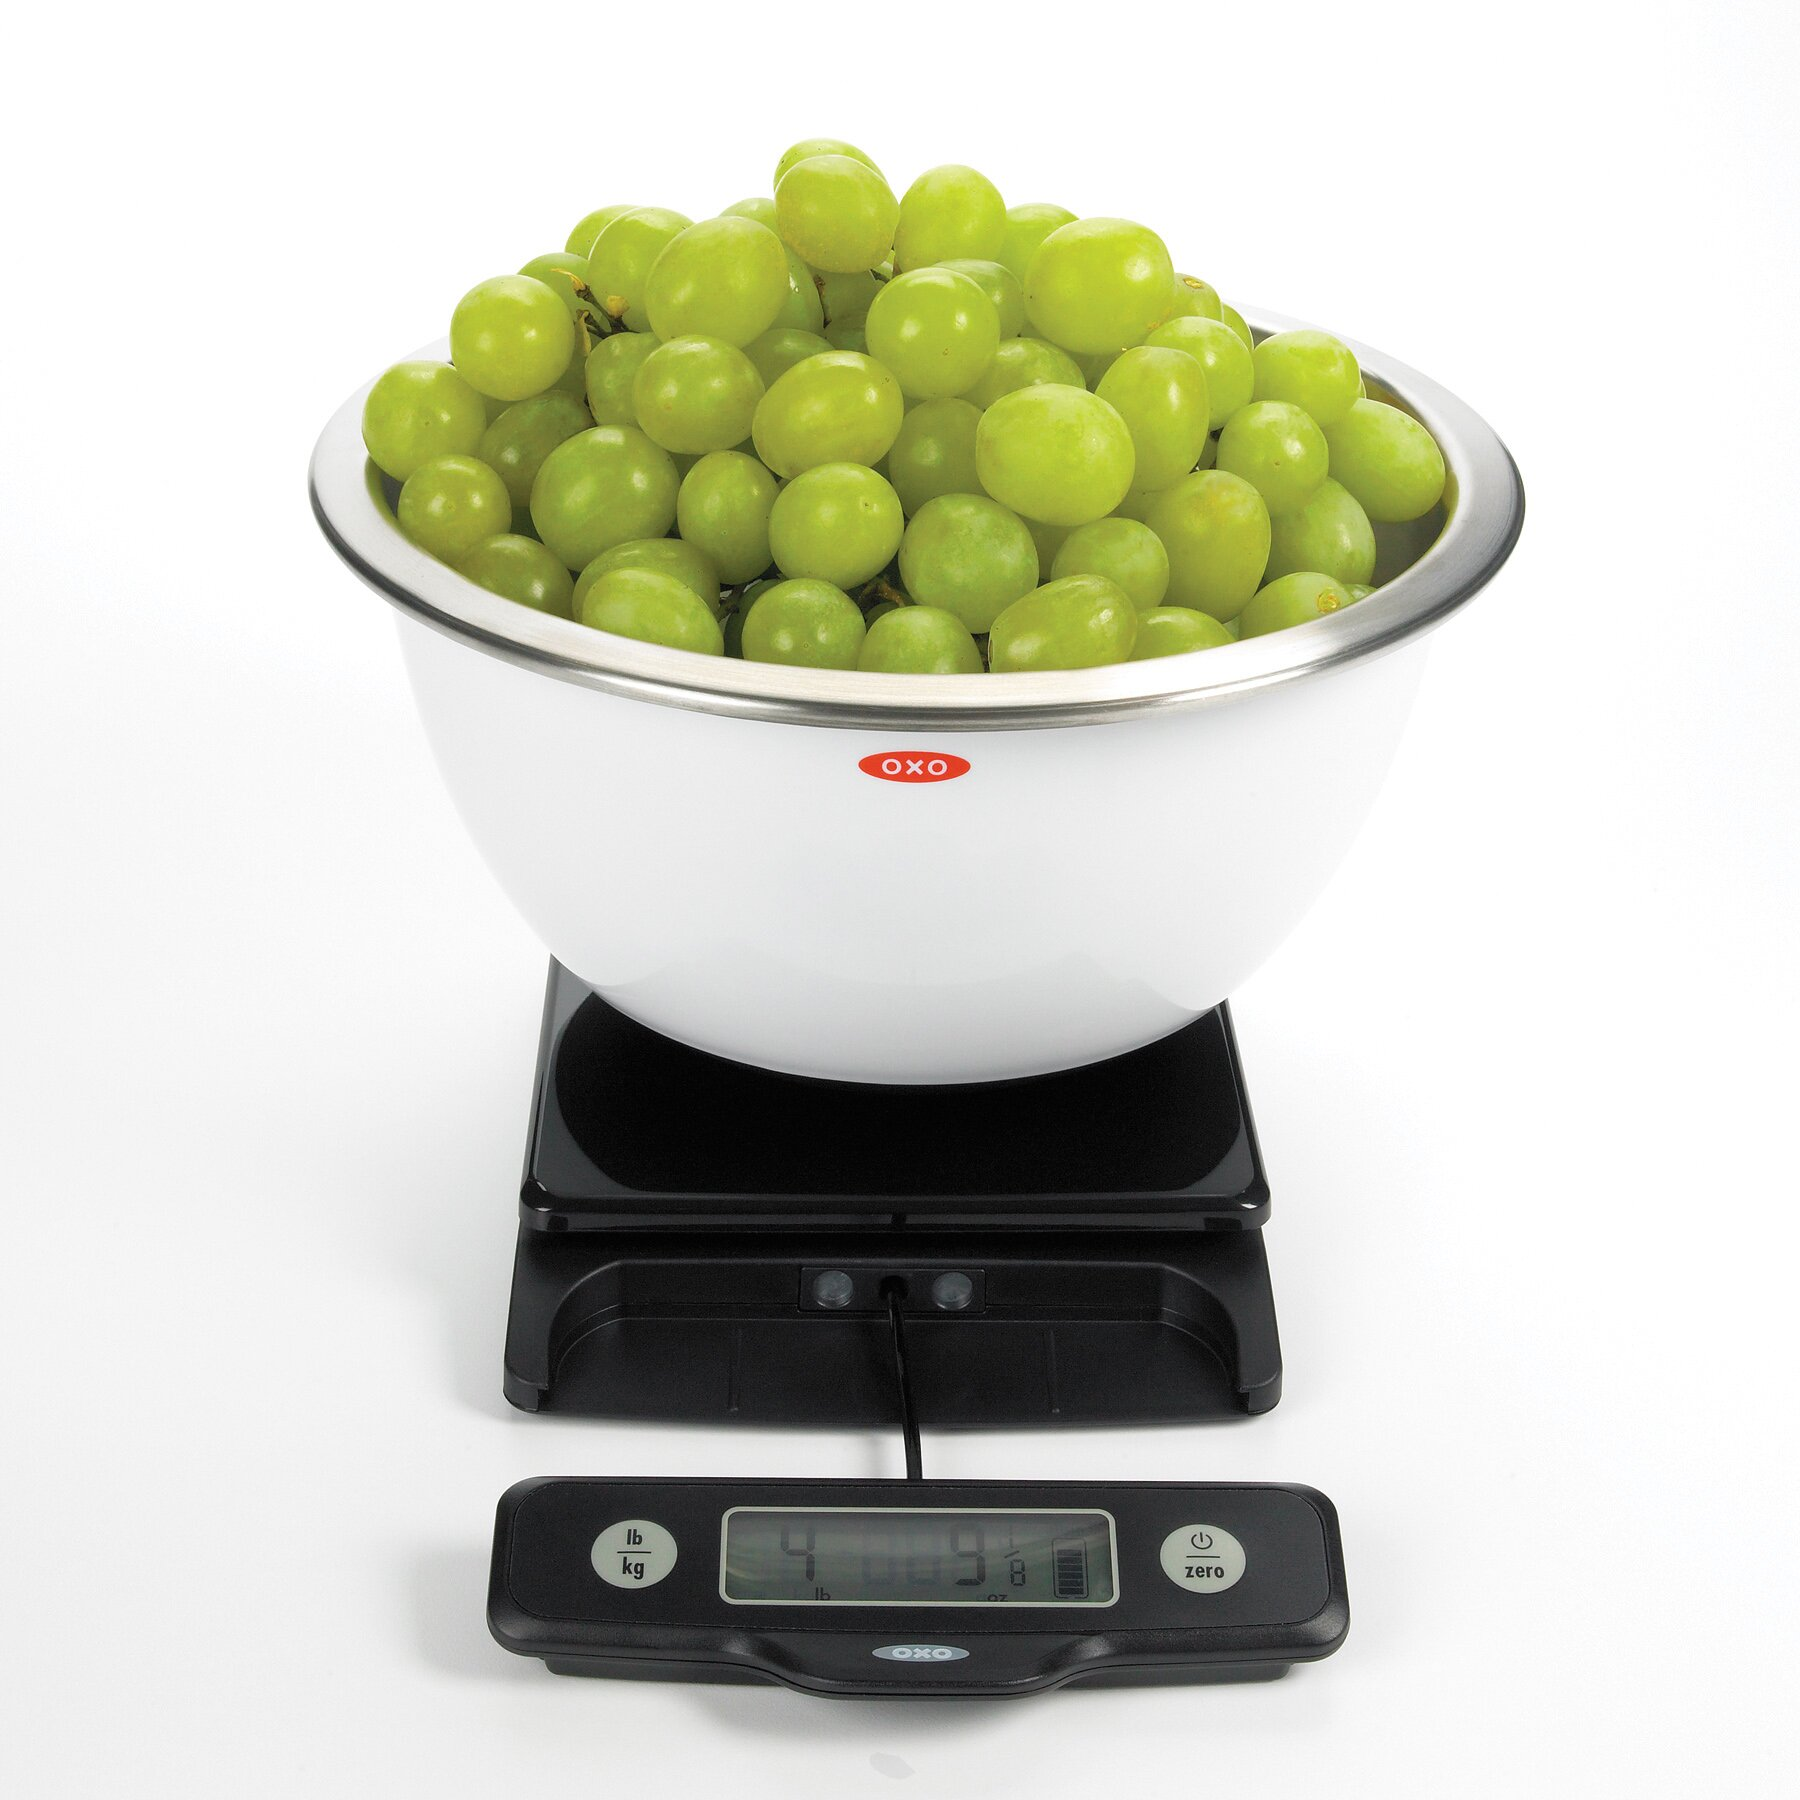 Oxo Food Scale Reviews